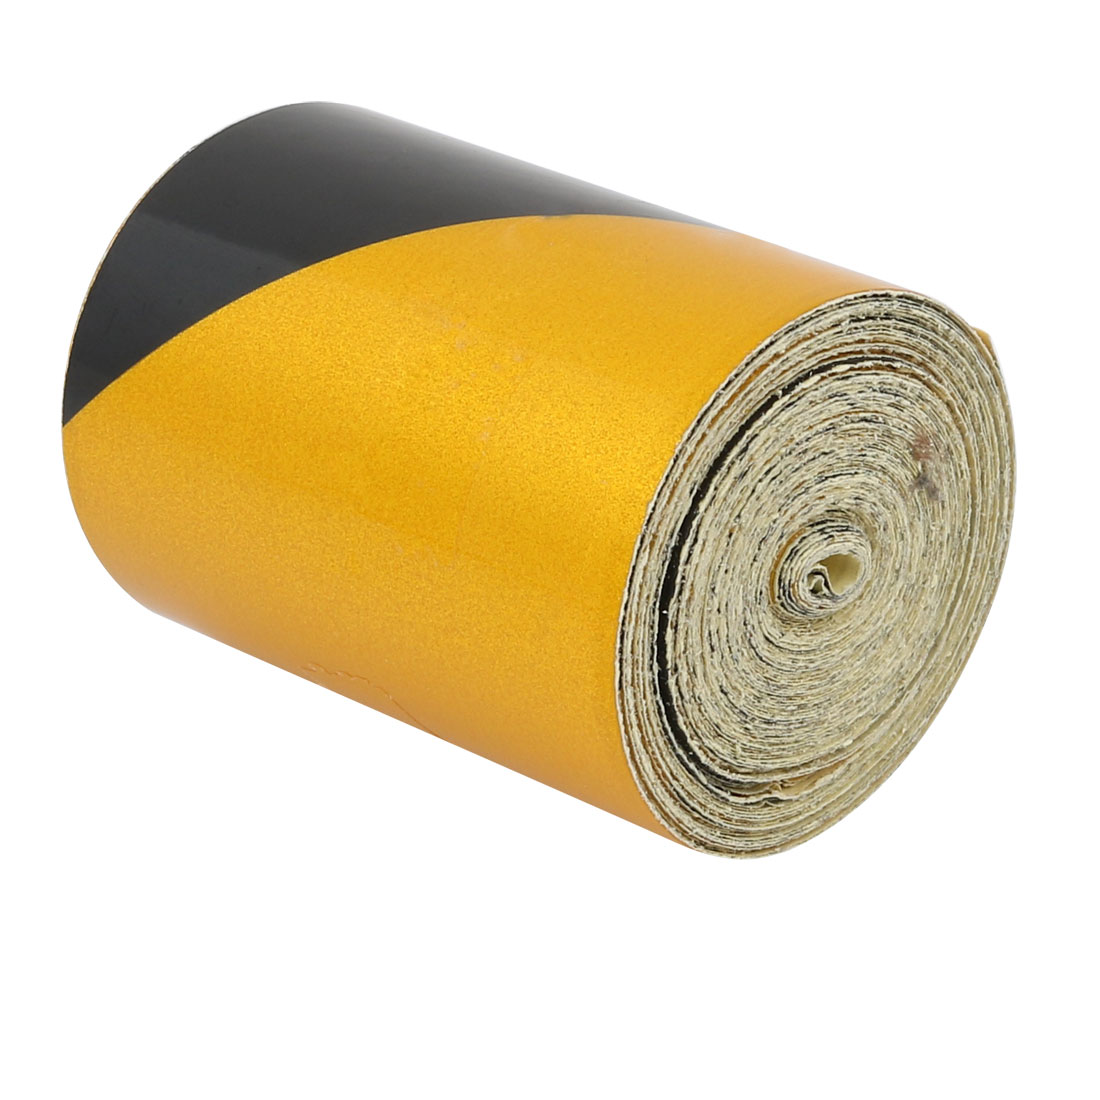 5cm Wide 6M Long Single Sided Adhesive Reflective Warning Tape Yellow Black